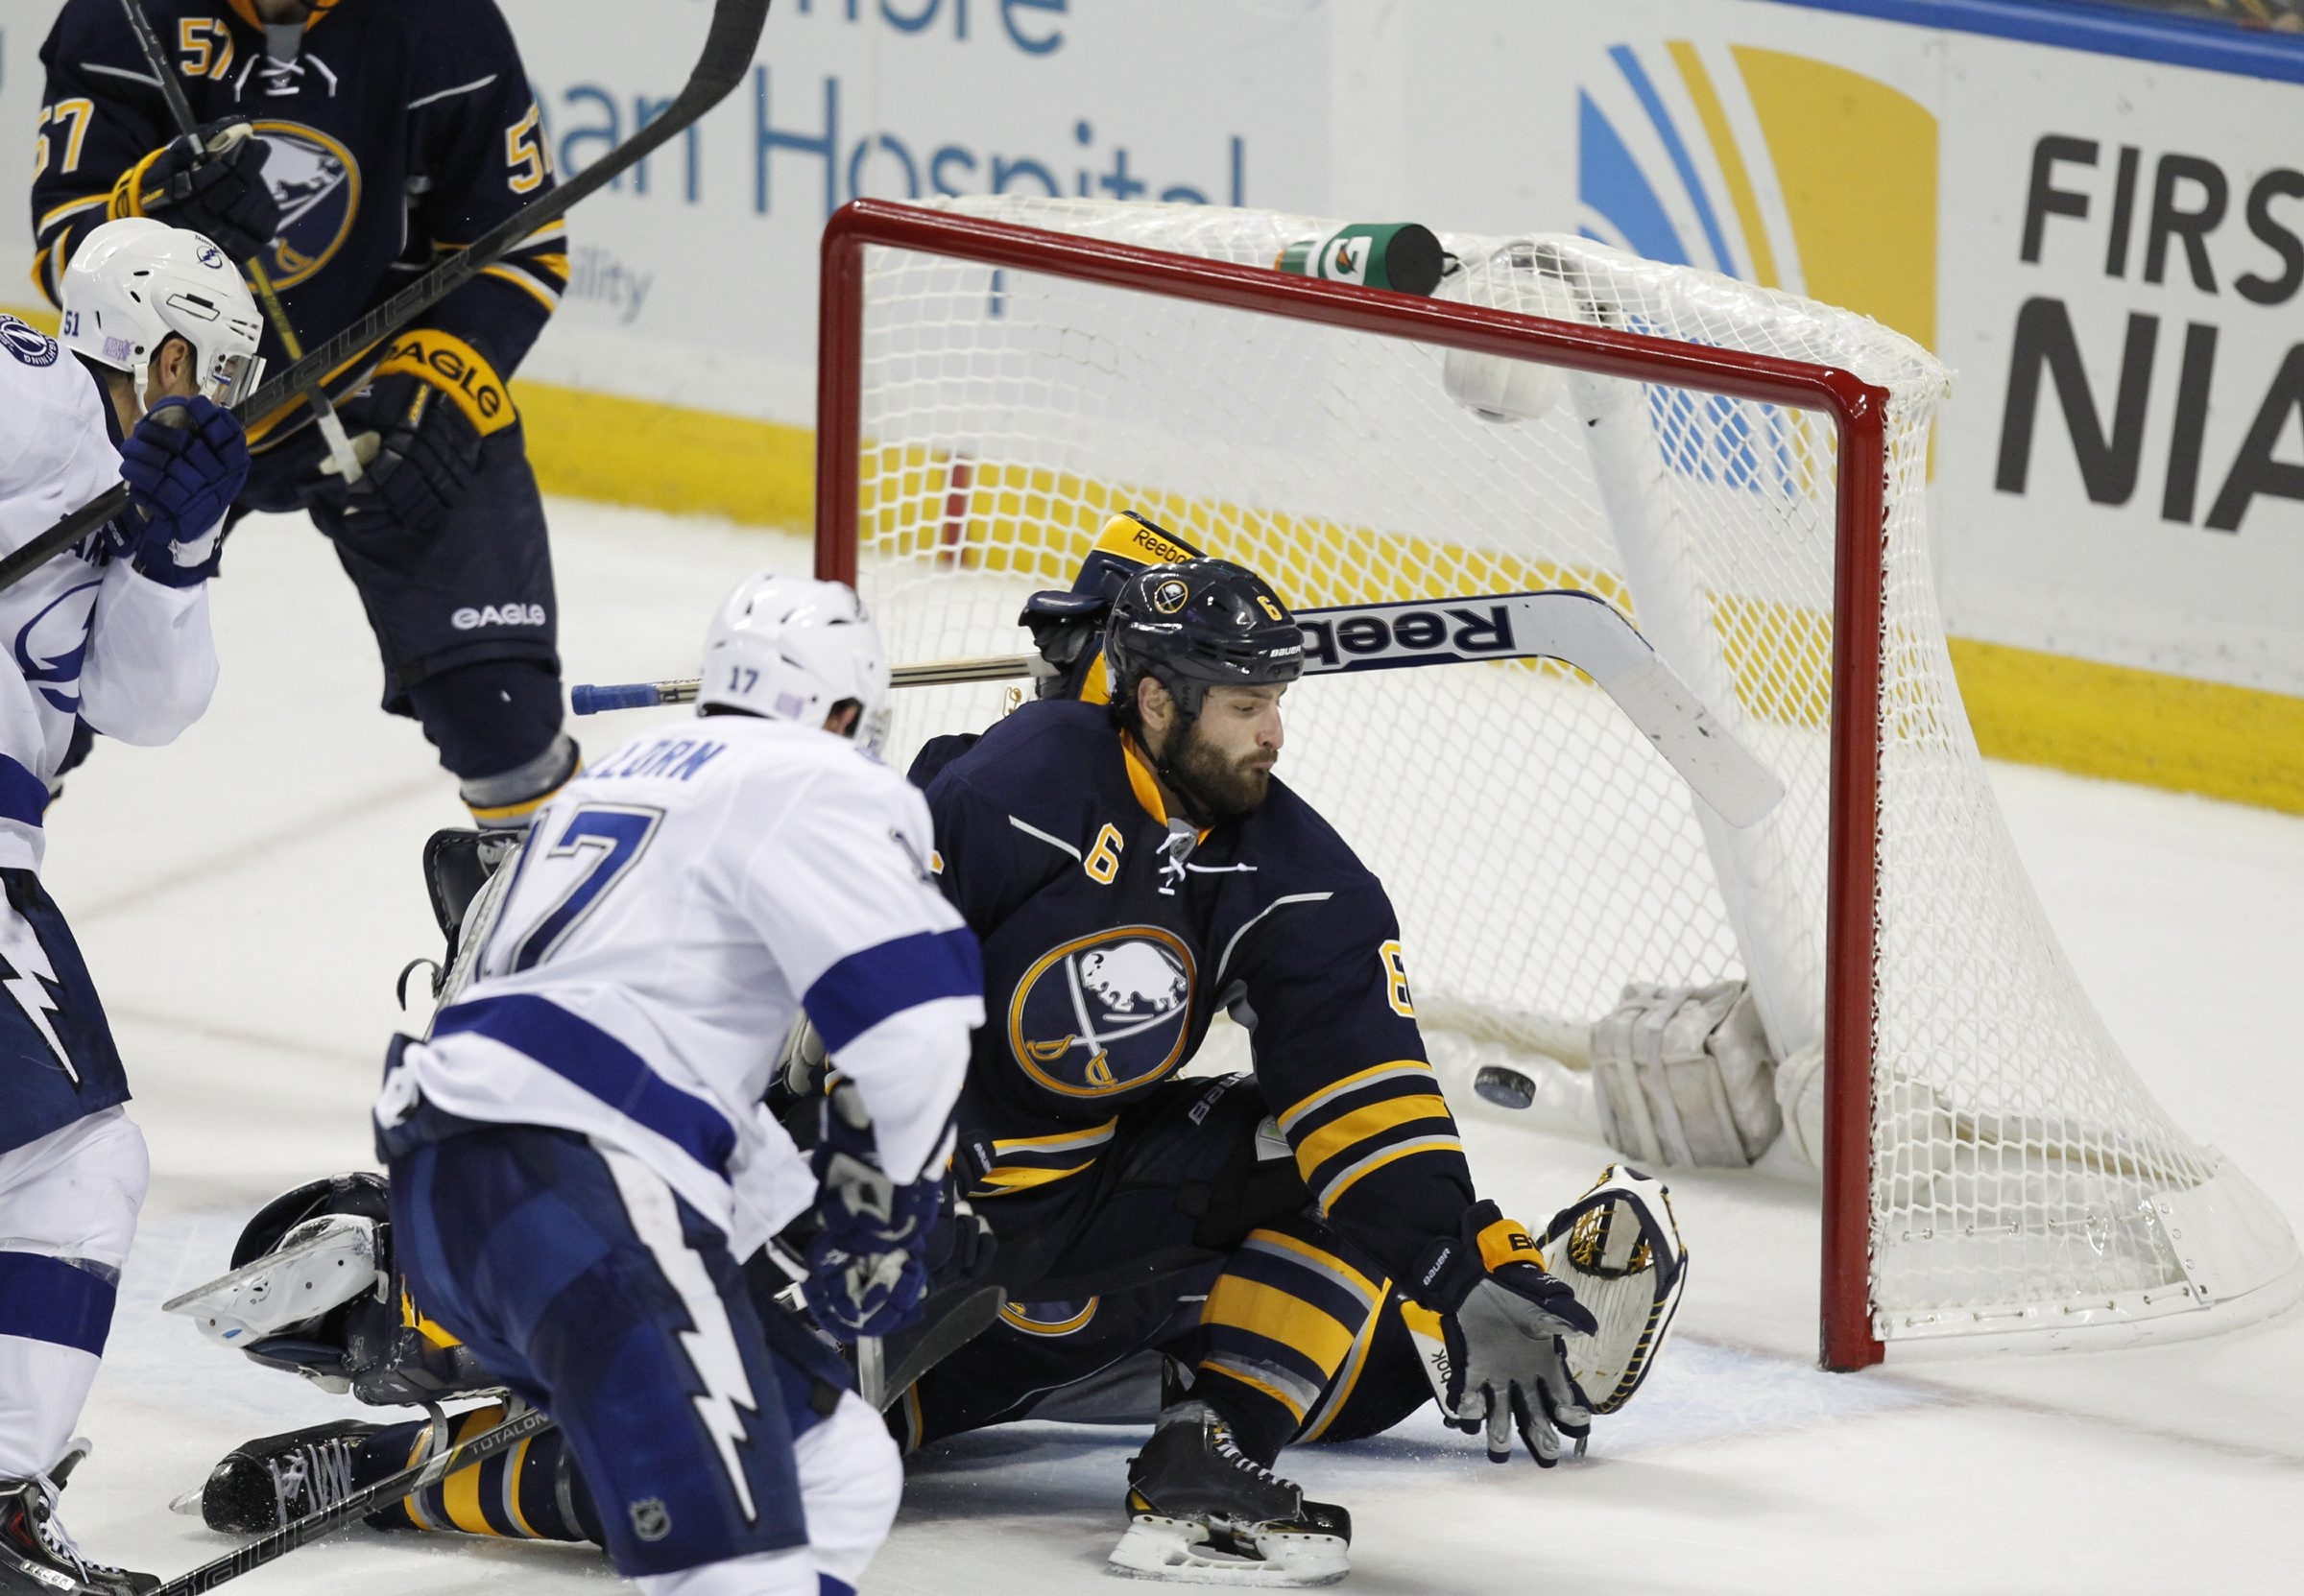 Tampa Bay's Alex Killorn slips the game-winner past Sabres defenseman Mike Weber and screened goalie Jhonas Enroth.